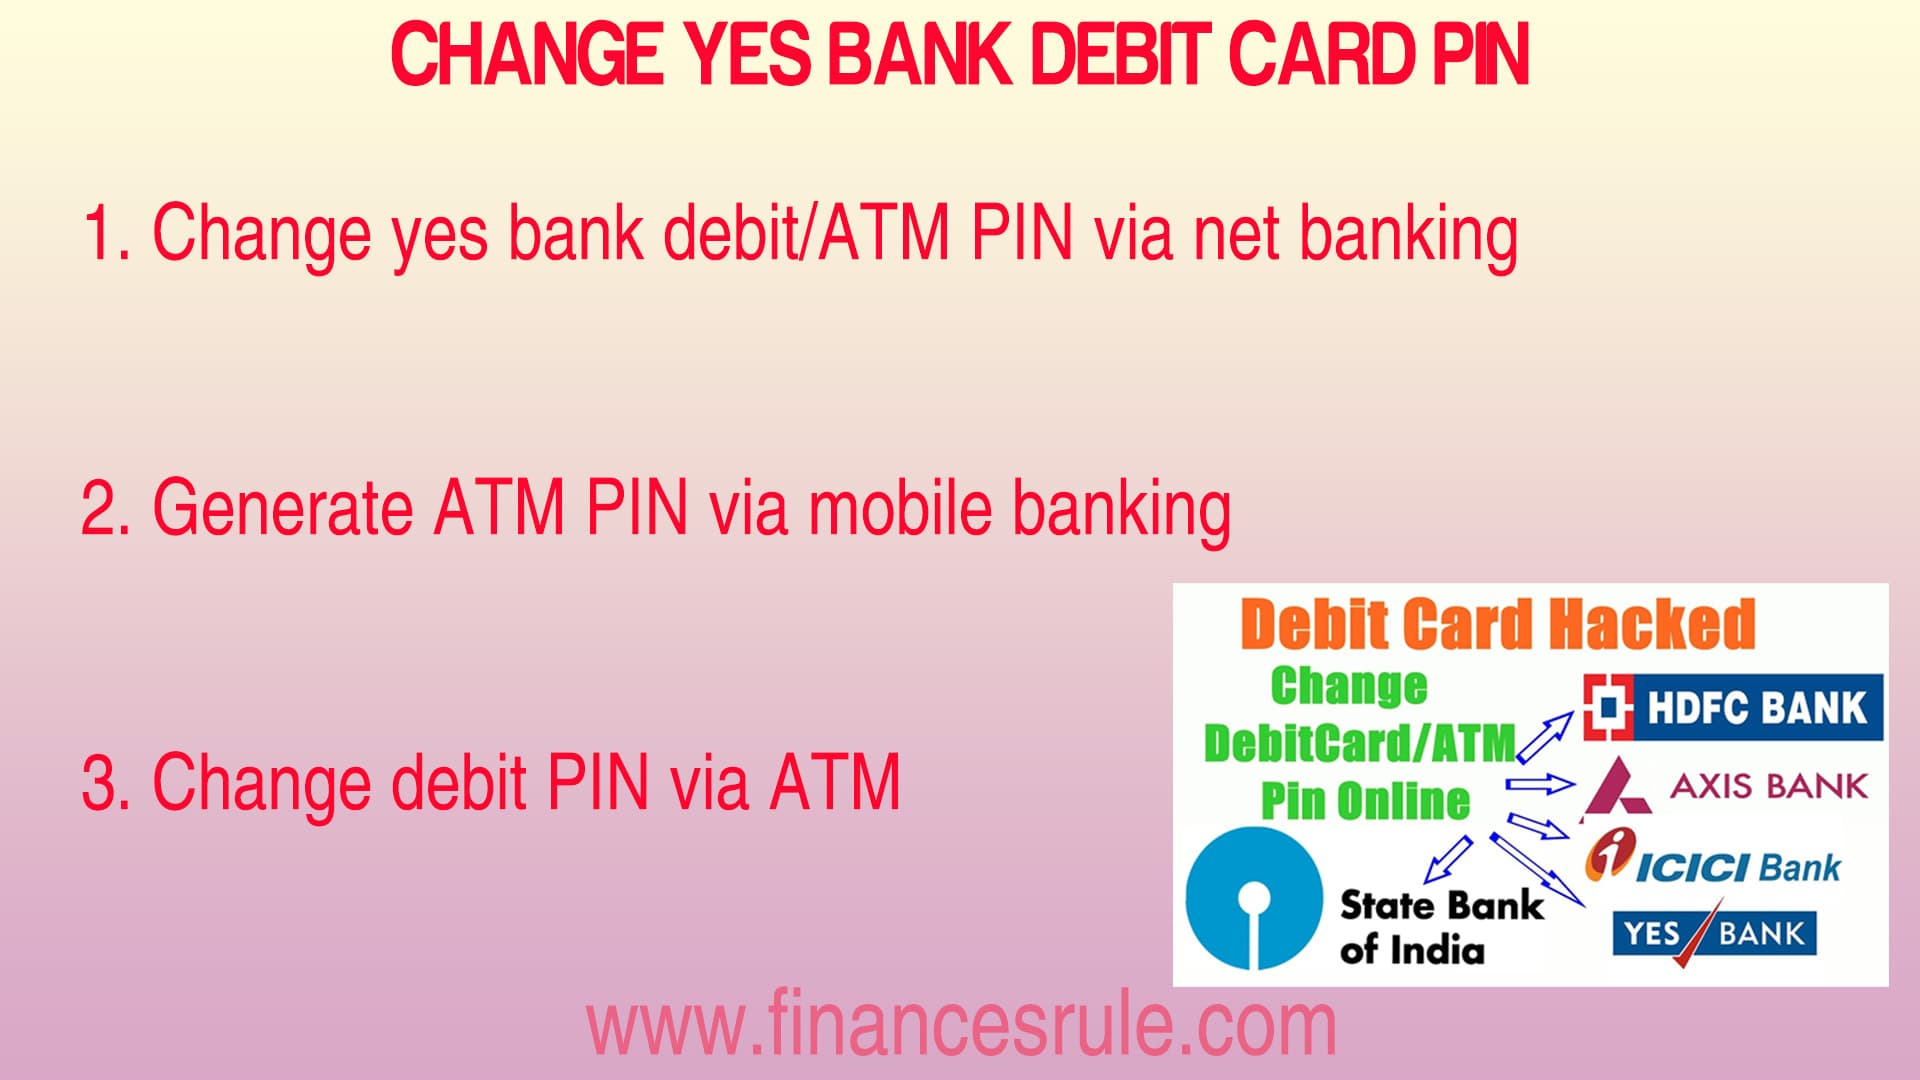 YEs Bank Debit Card Pin